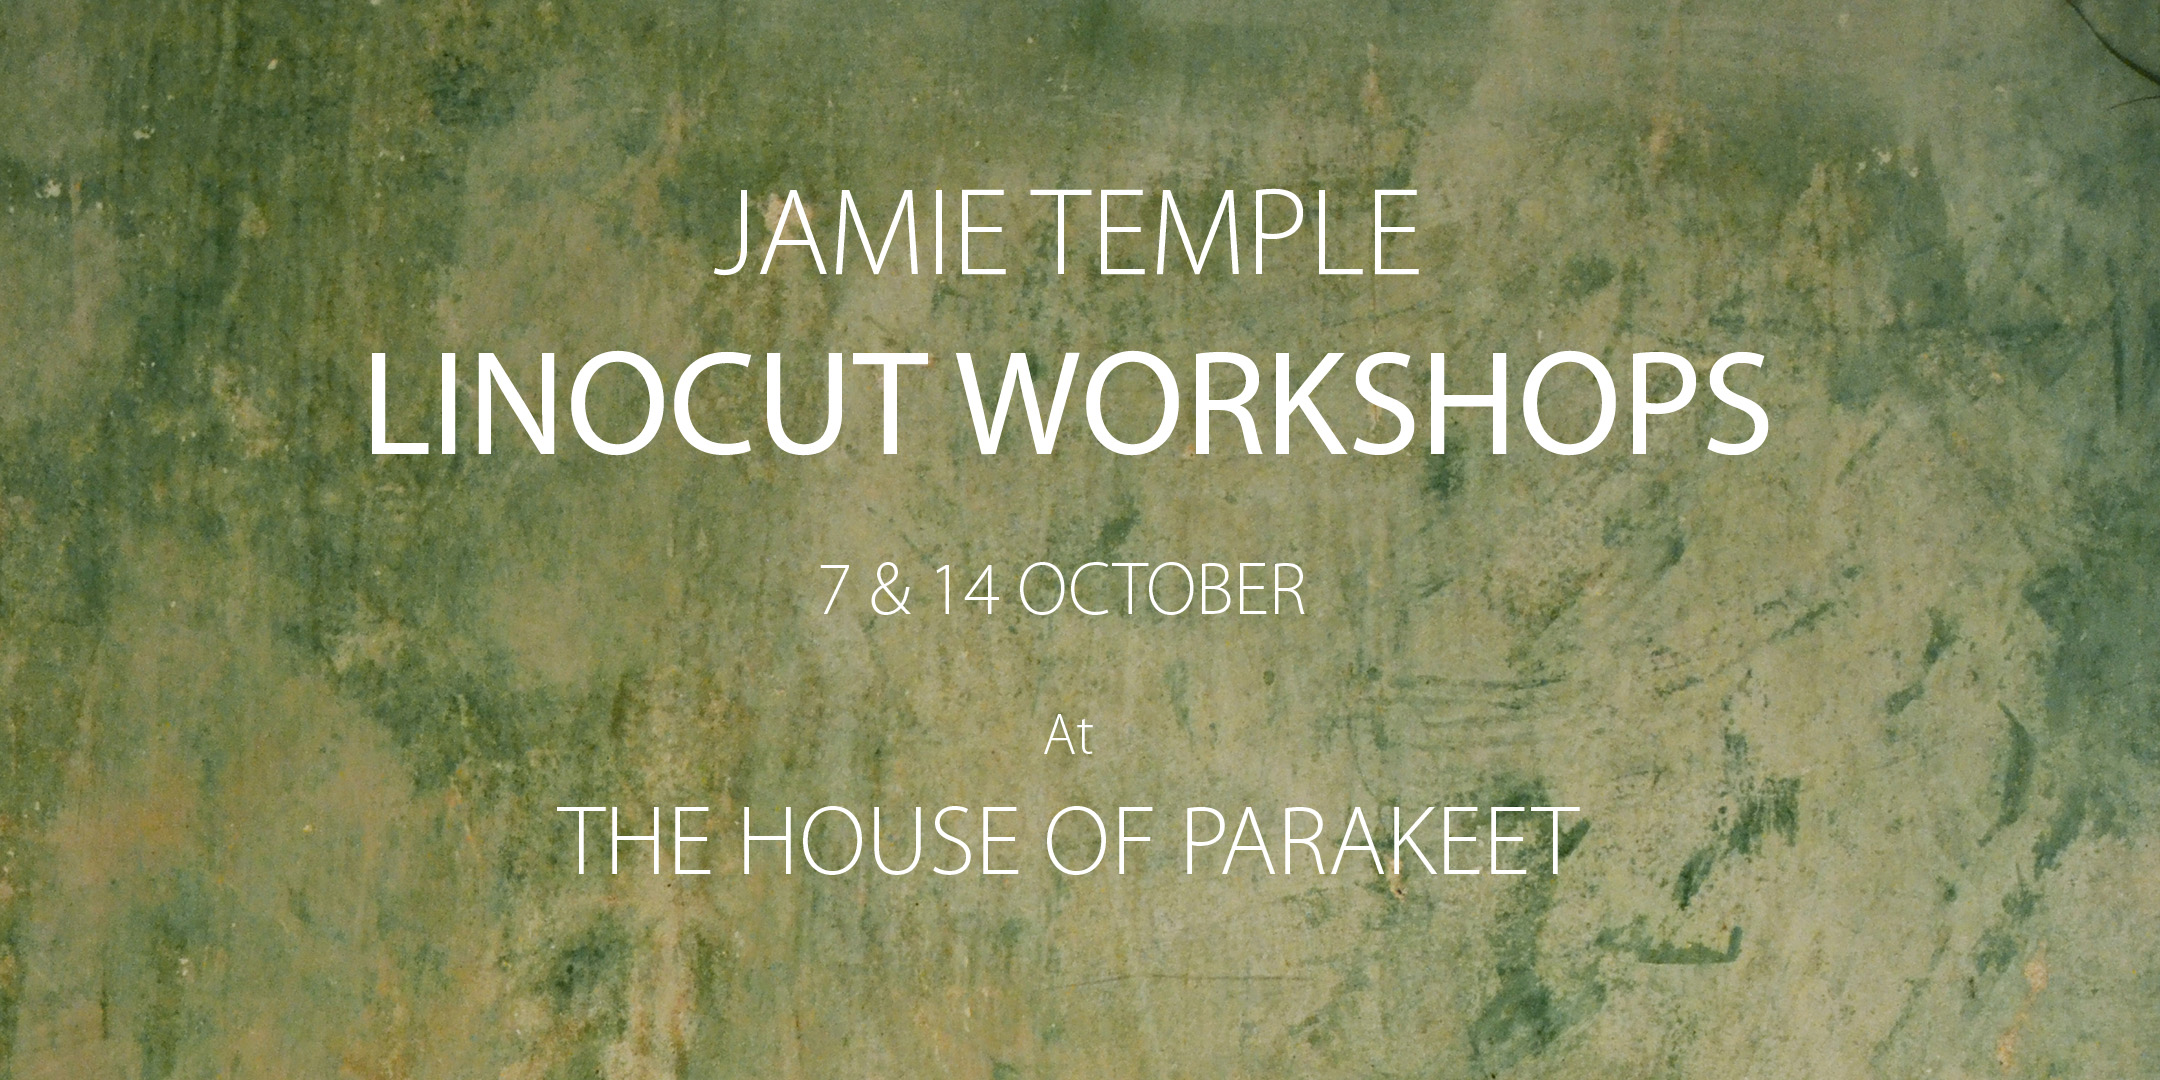 JAMIE TEMPLE, LINOCUT WORKSHOPS